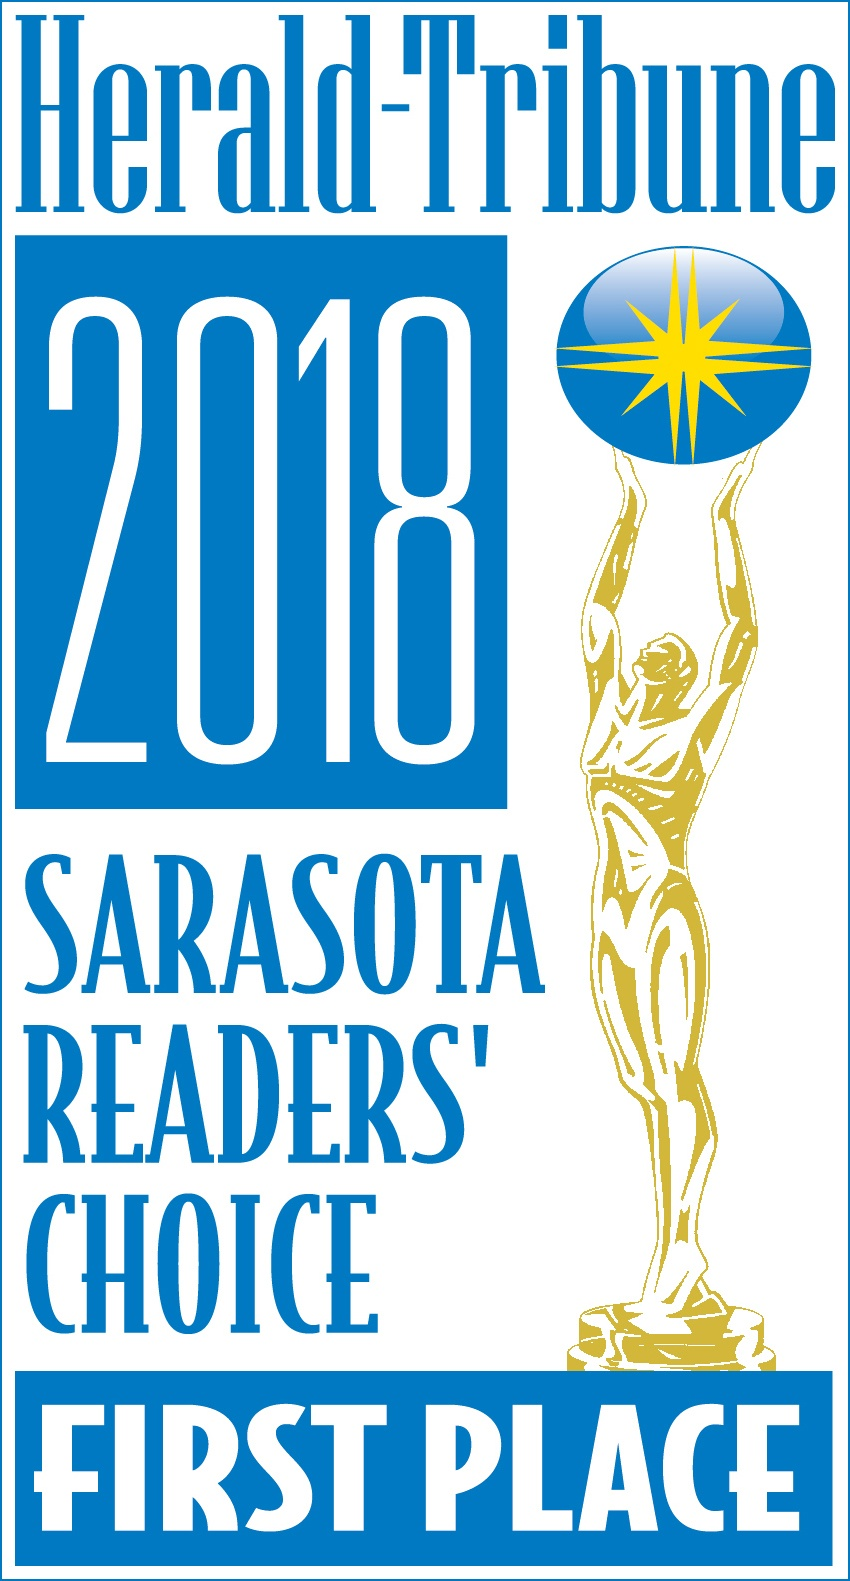 Sarasota Readers' Choice Finalist Winner